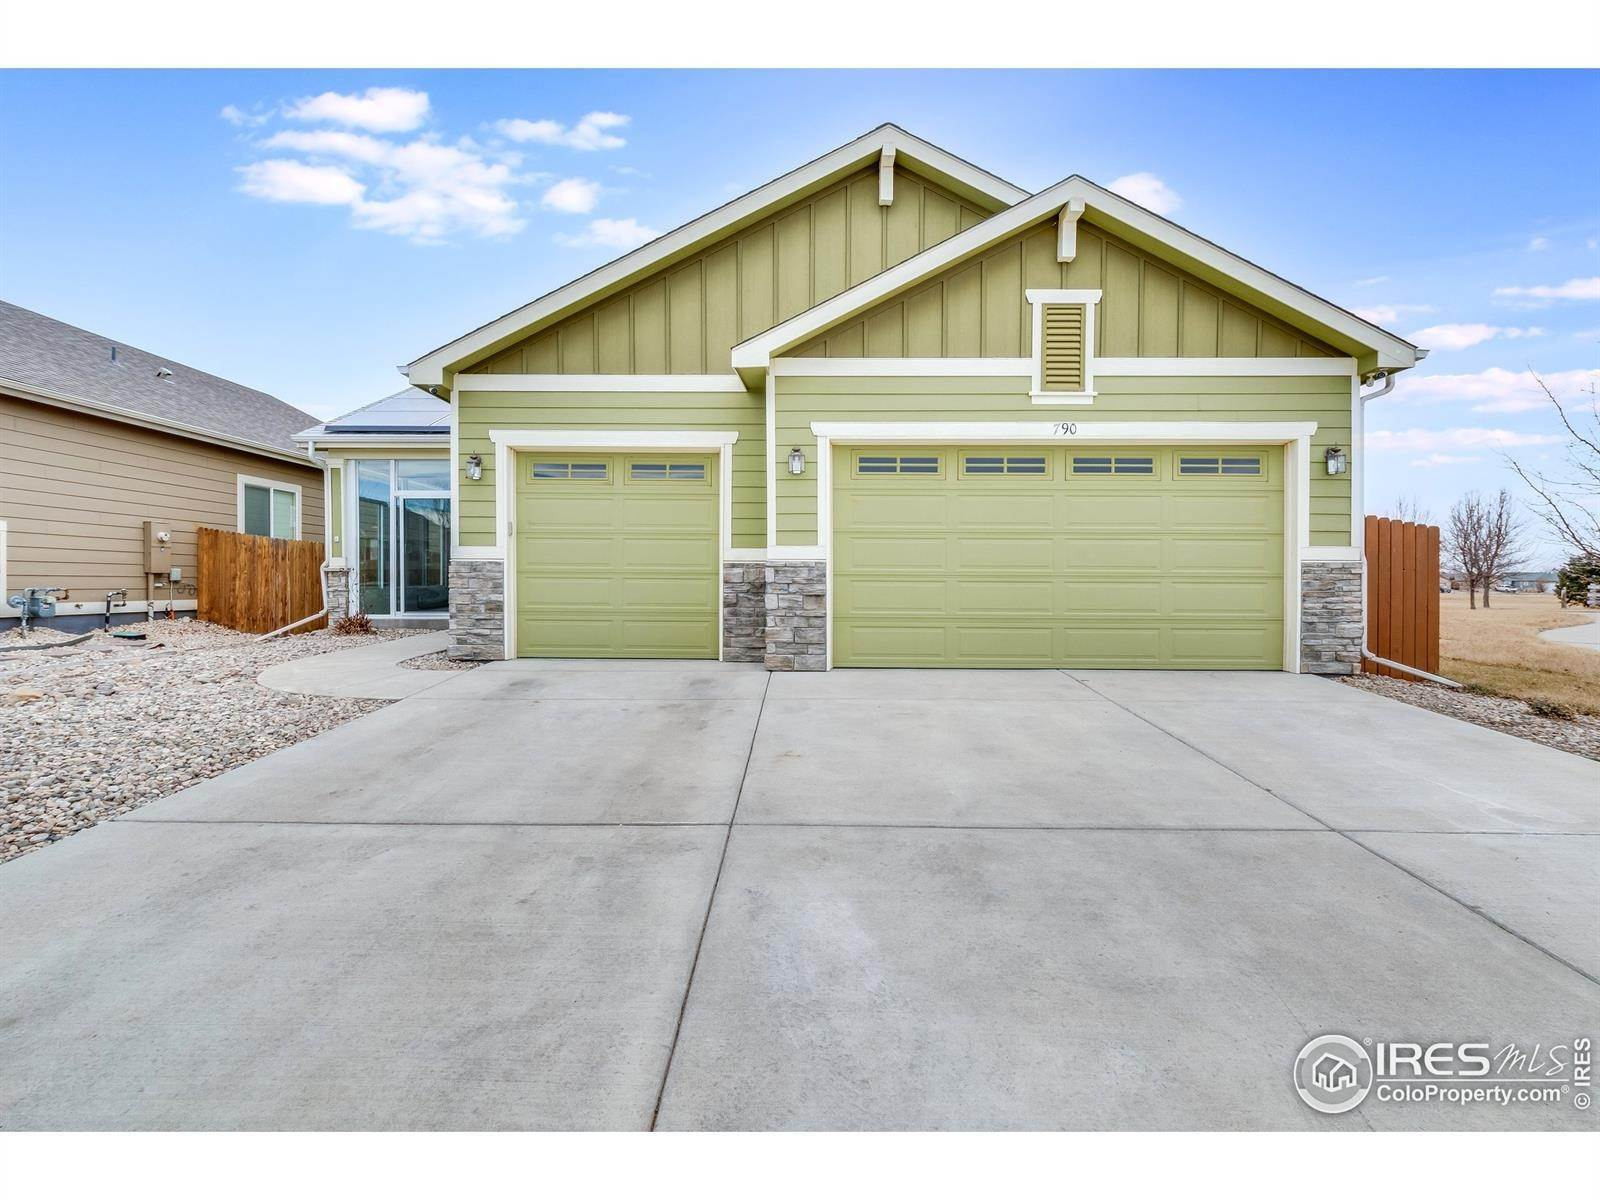 Single Family Homes for Sale at 790 Village Drive Milliken, Colorado 80543 United States